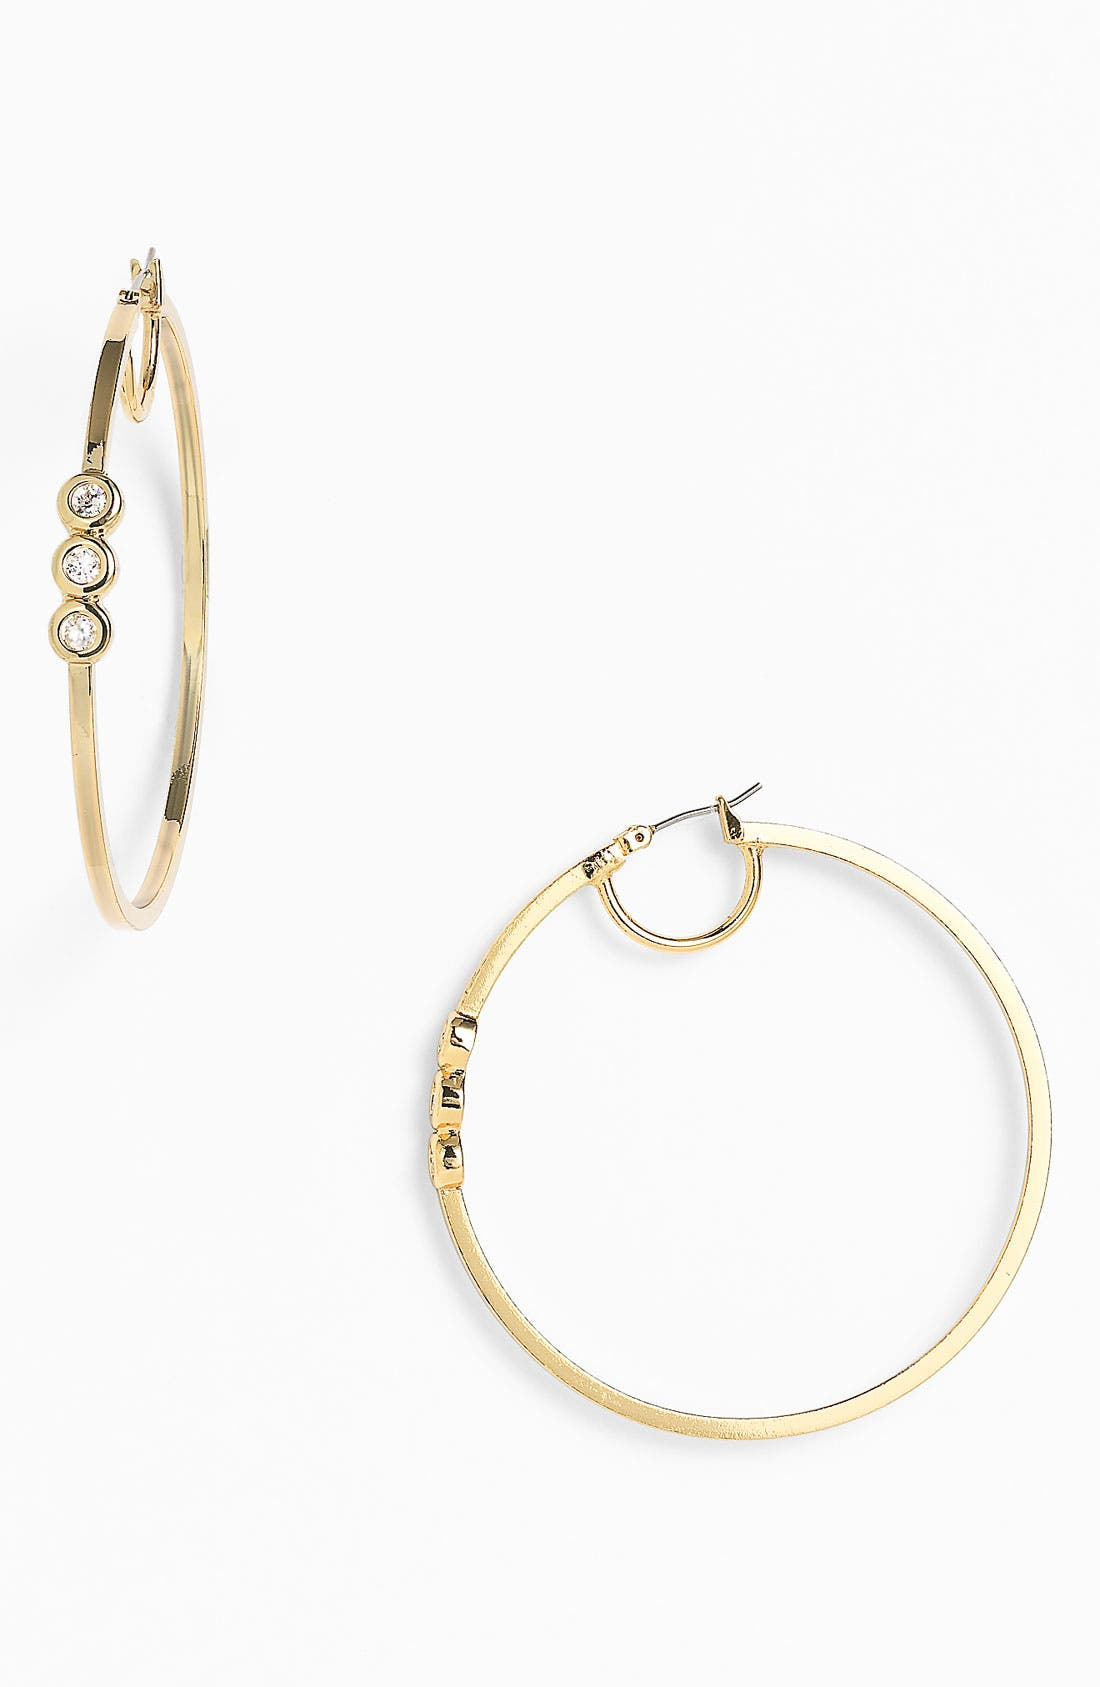 Main Image - Vince Camuto 'Basics' Hoop Earrings